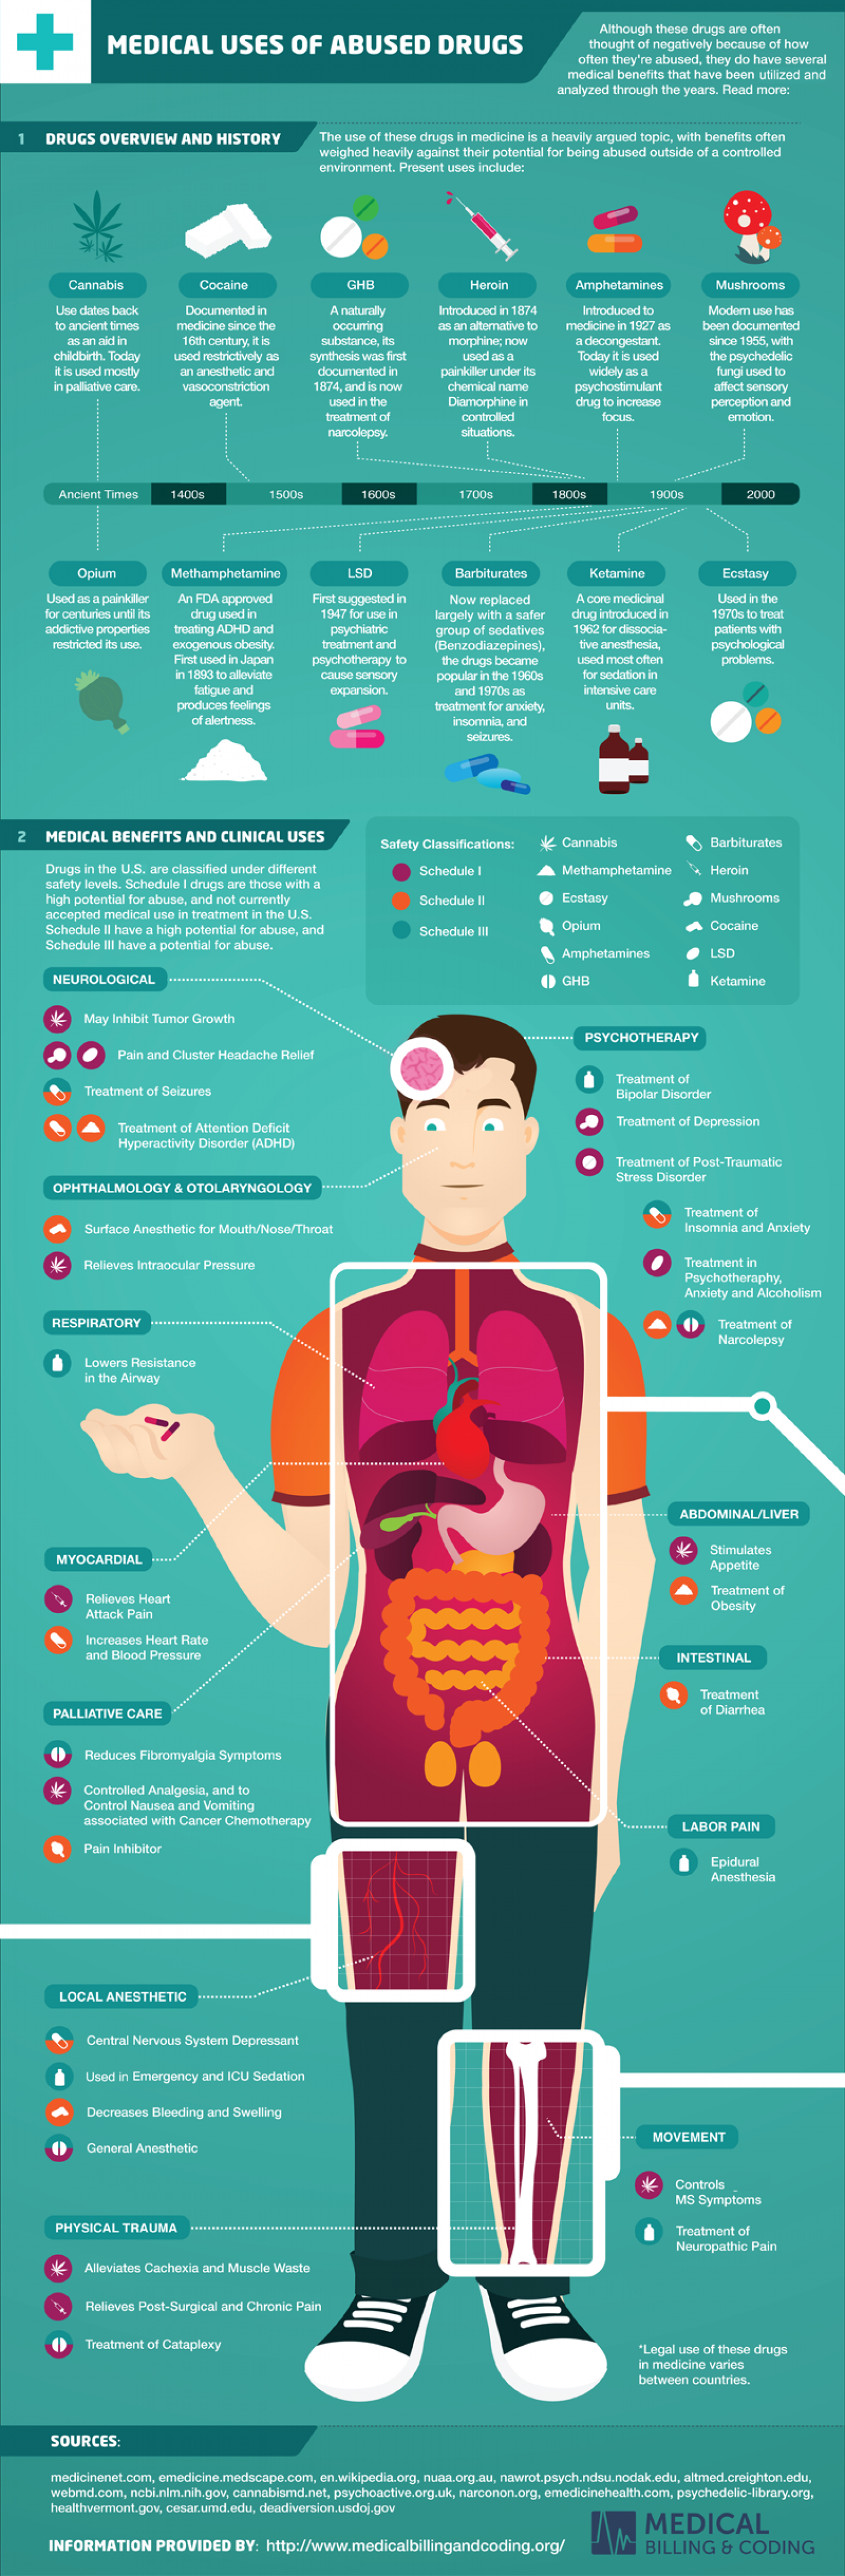 Medical Uses Of Abused Drugs Infographic